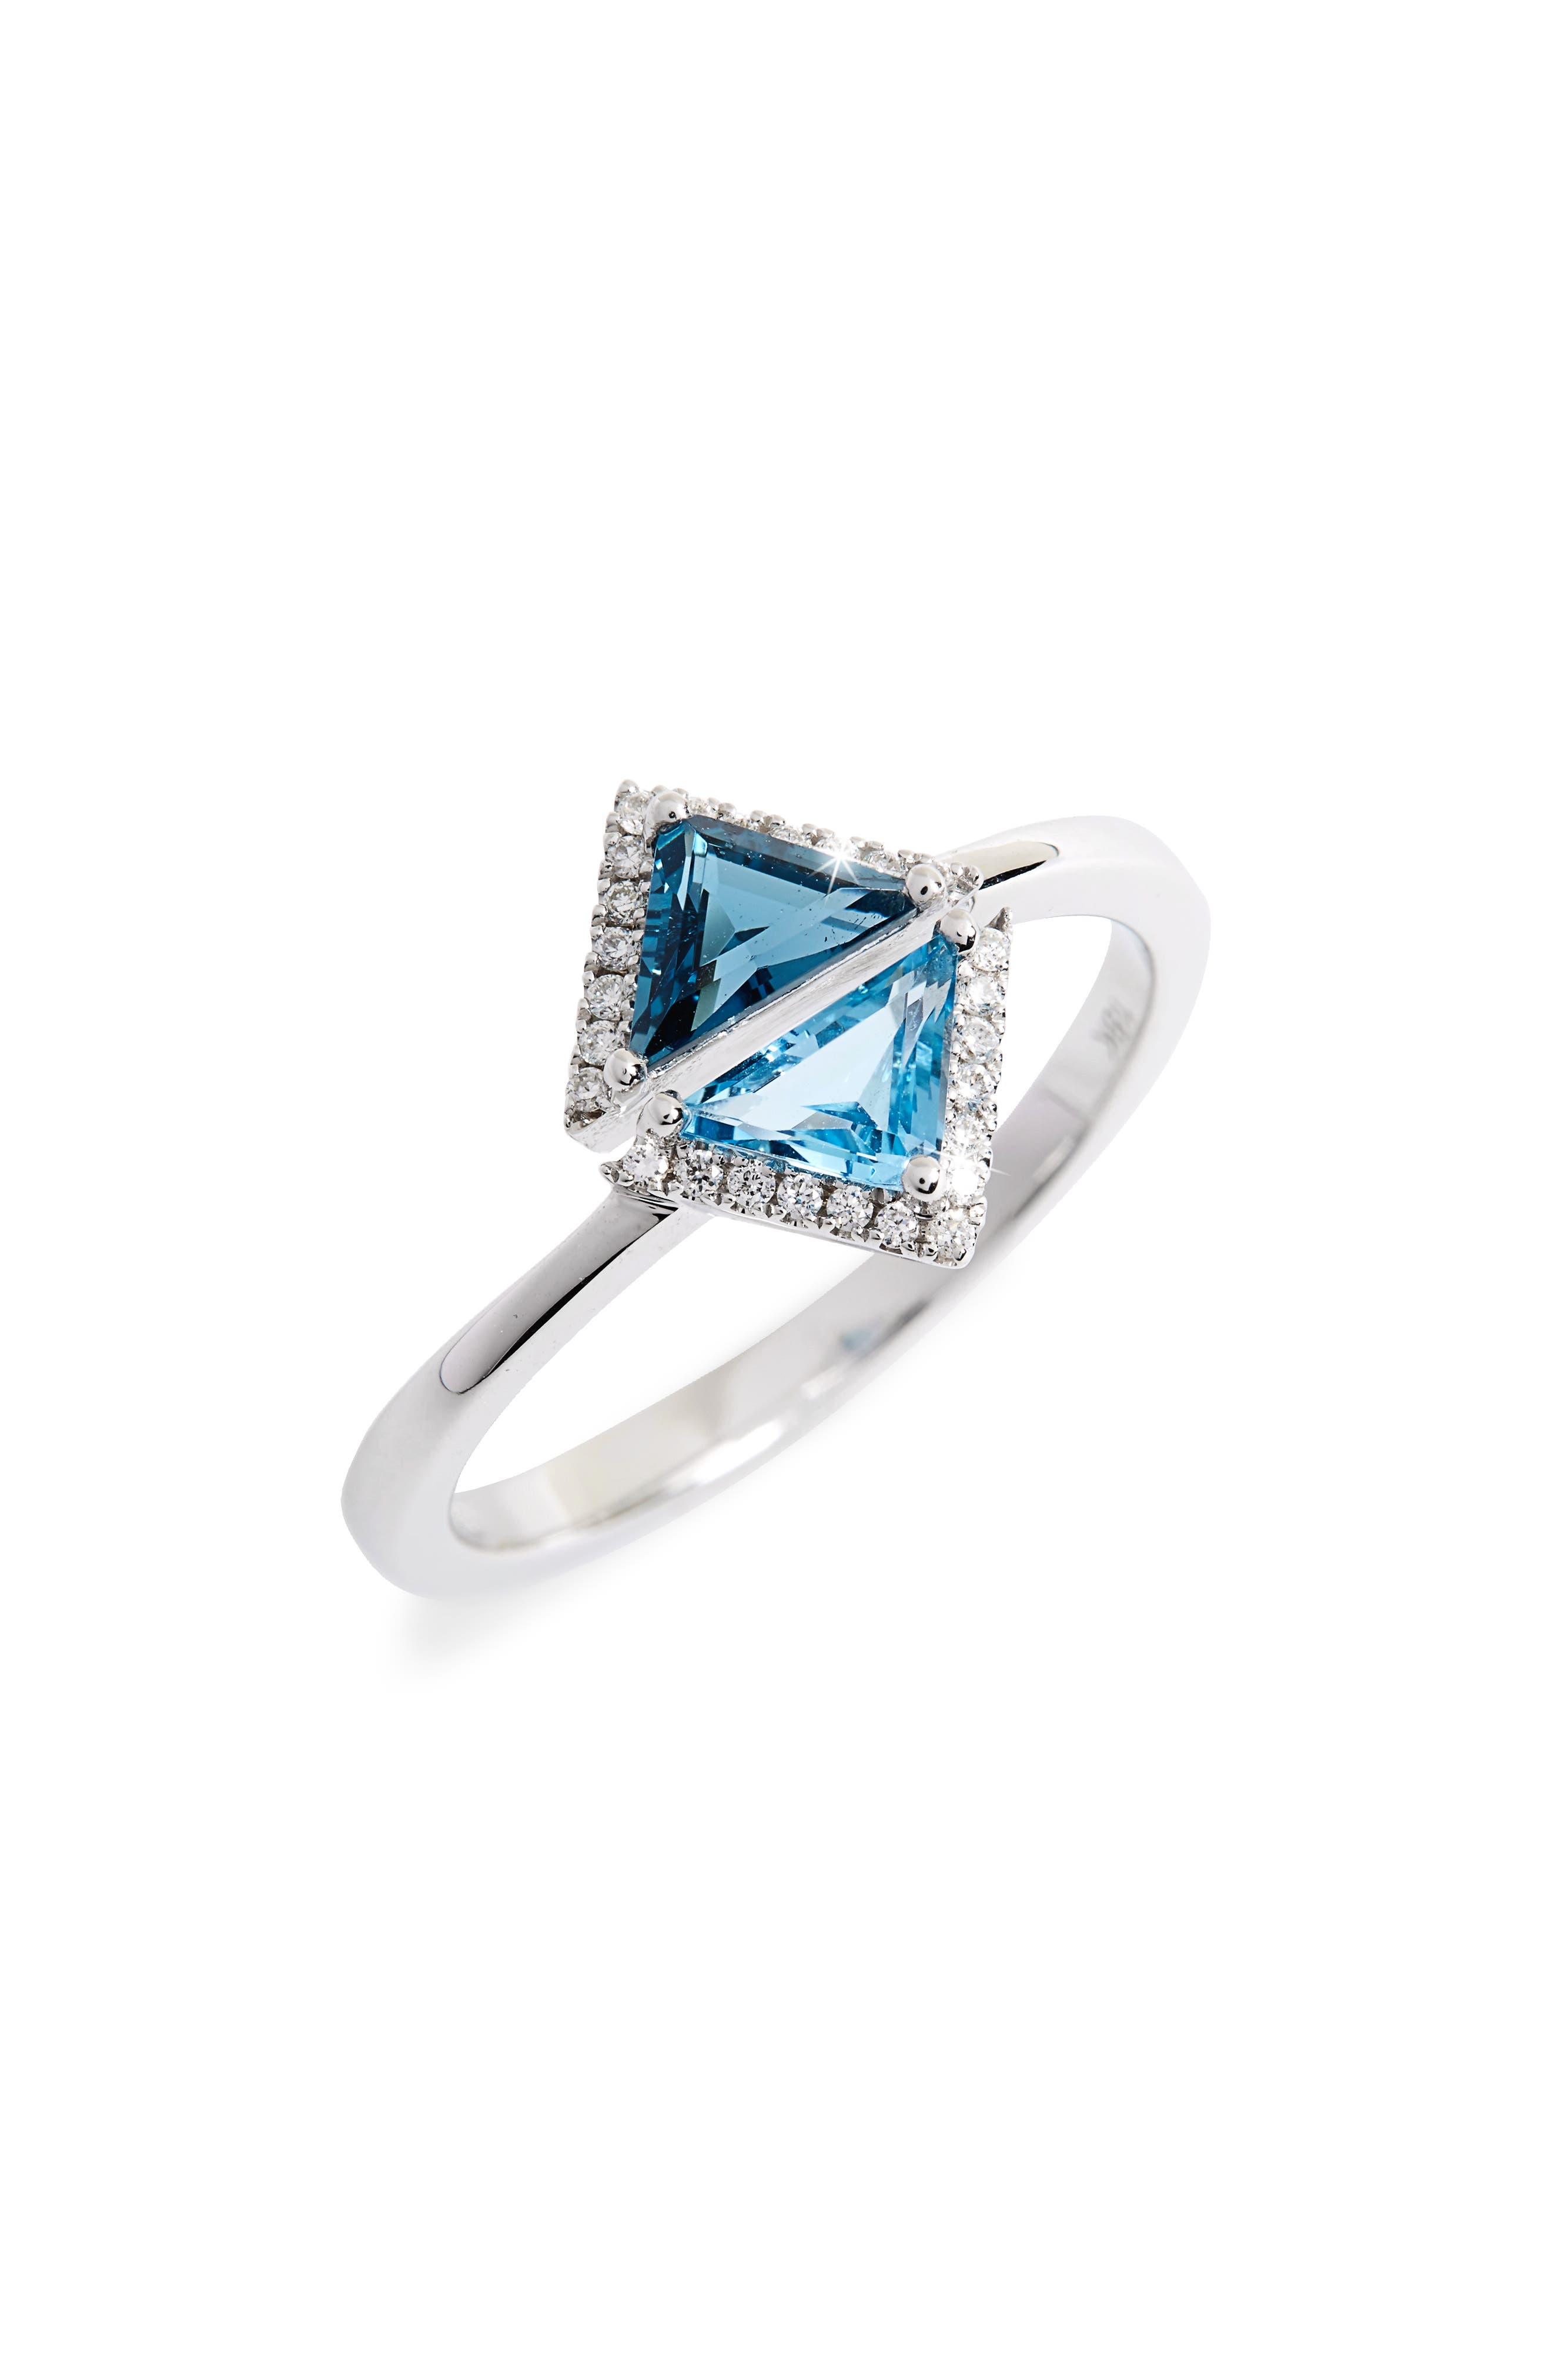 Main Image - Bony Levy Iris Double Triangle Diamond & Semiprecious Stone Ring (Nordstrom Exclusive)